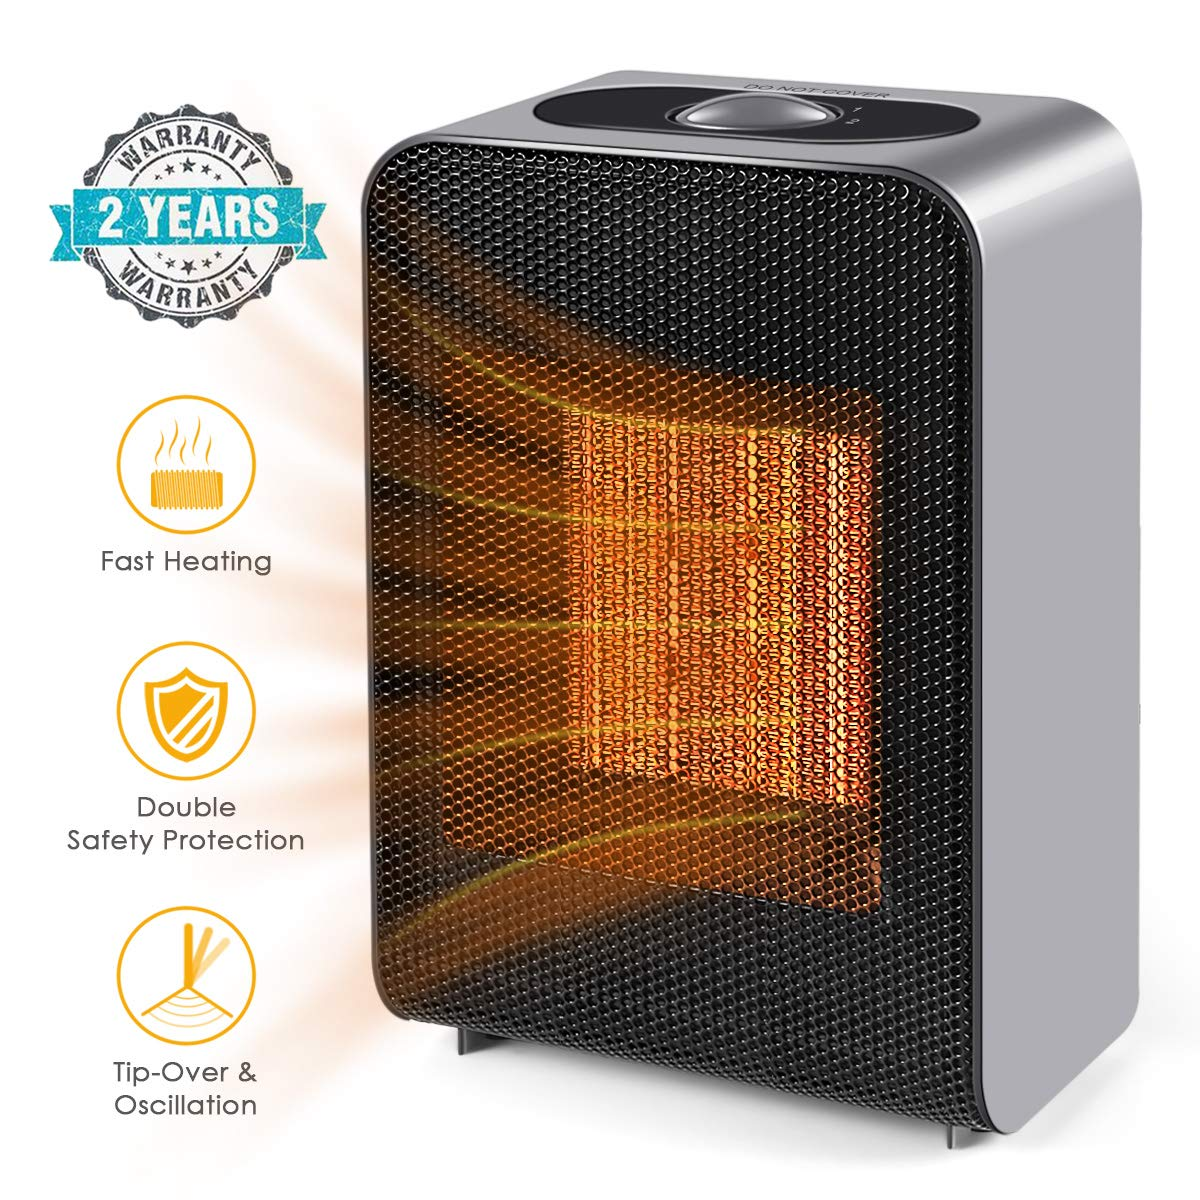 c46a2d319bf Top 10 Best Portable Electric Heaters in 2019 - Top Best Pro Review